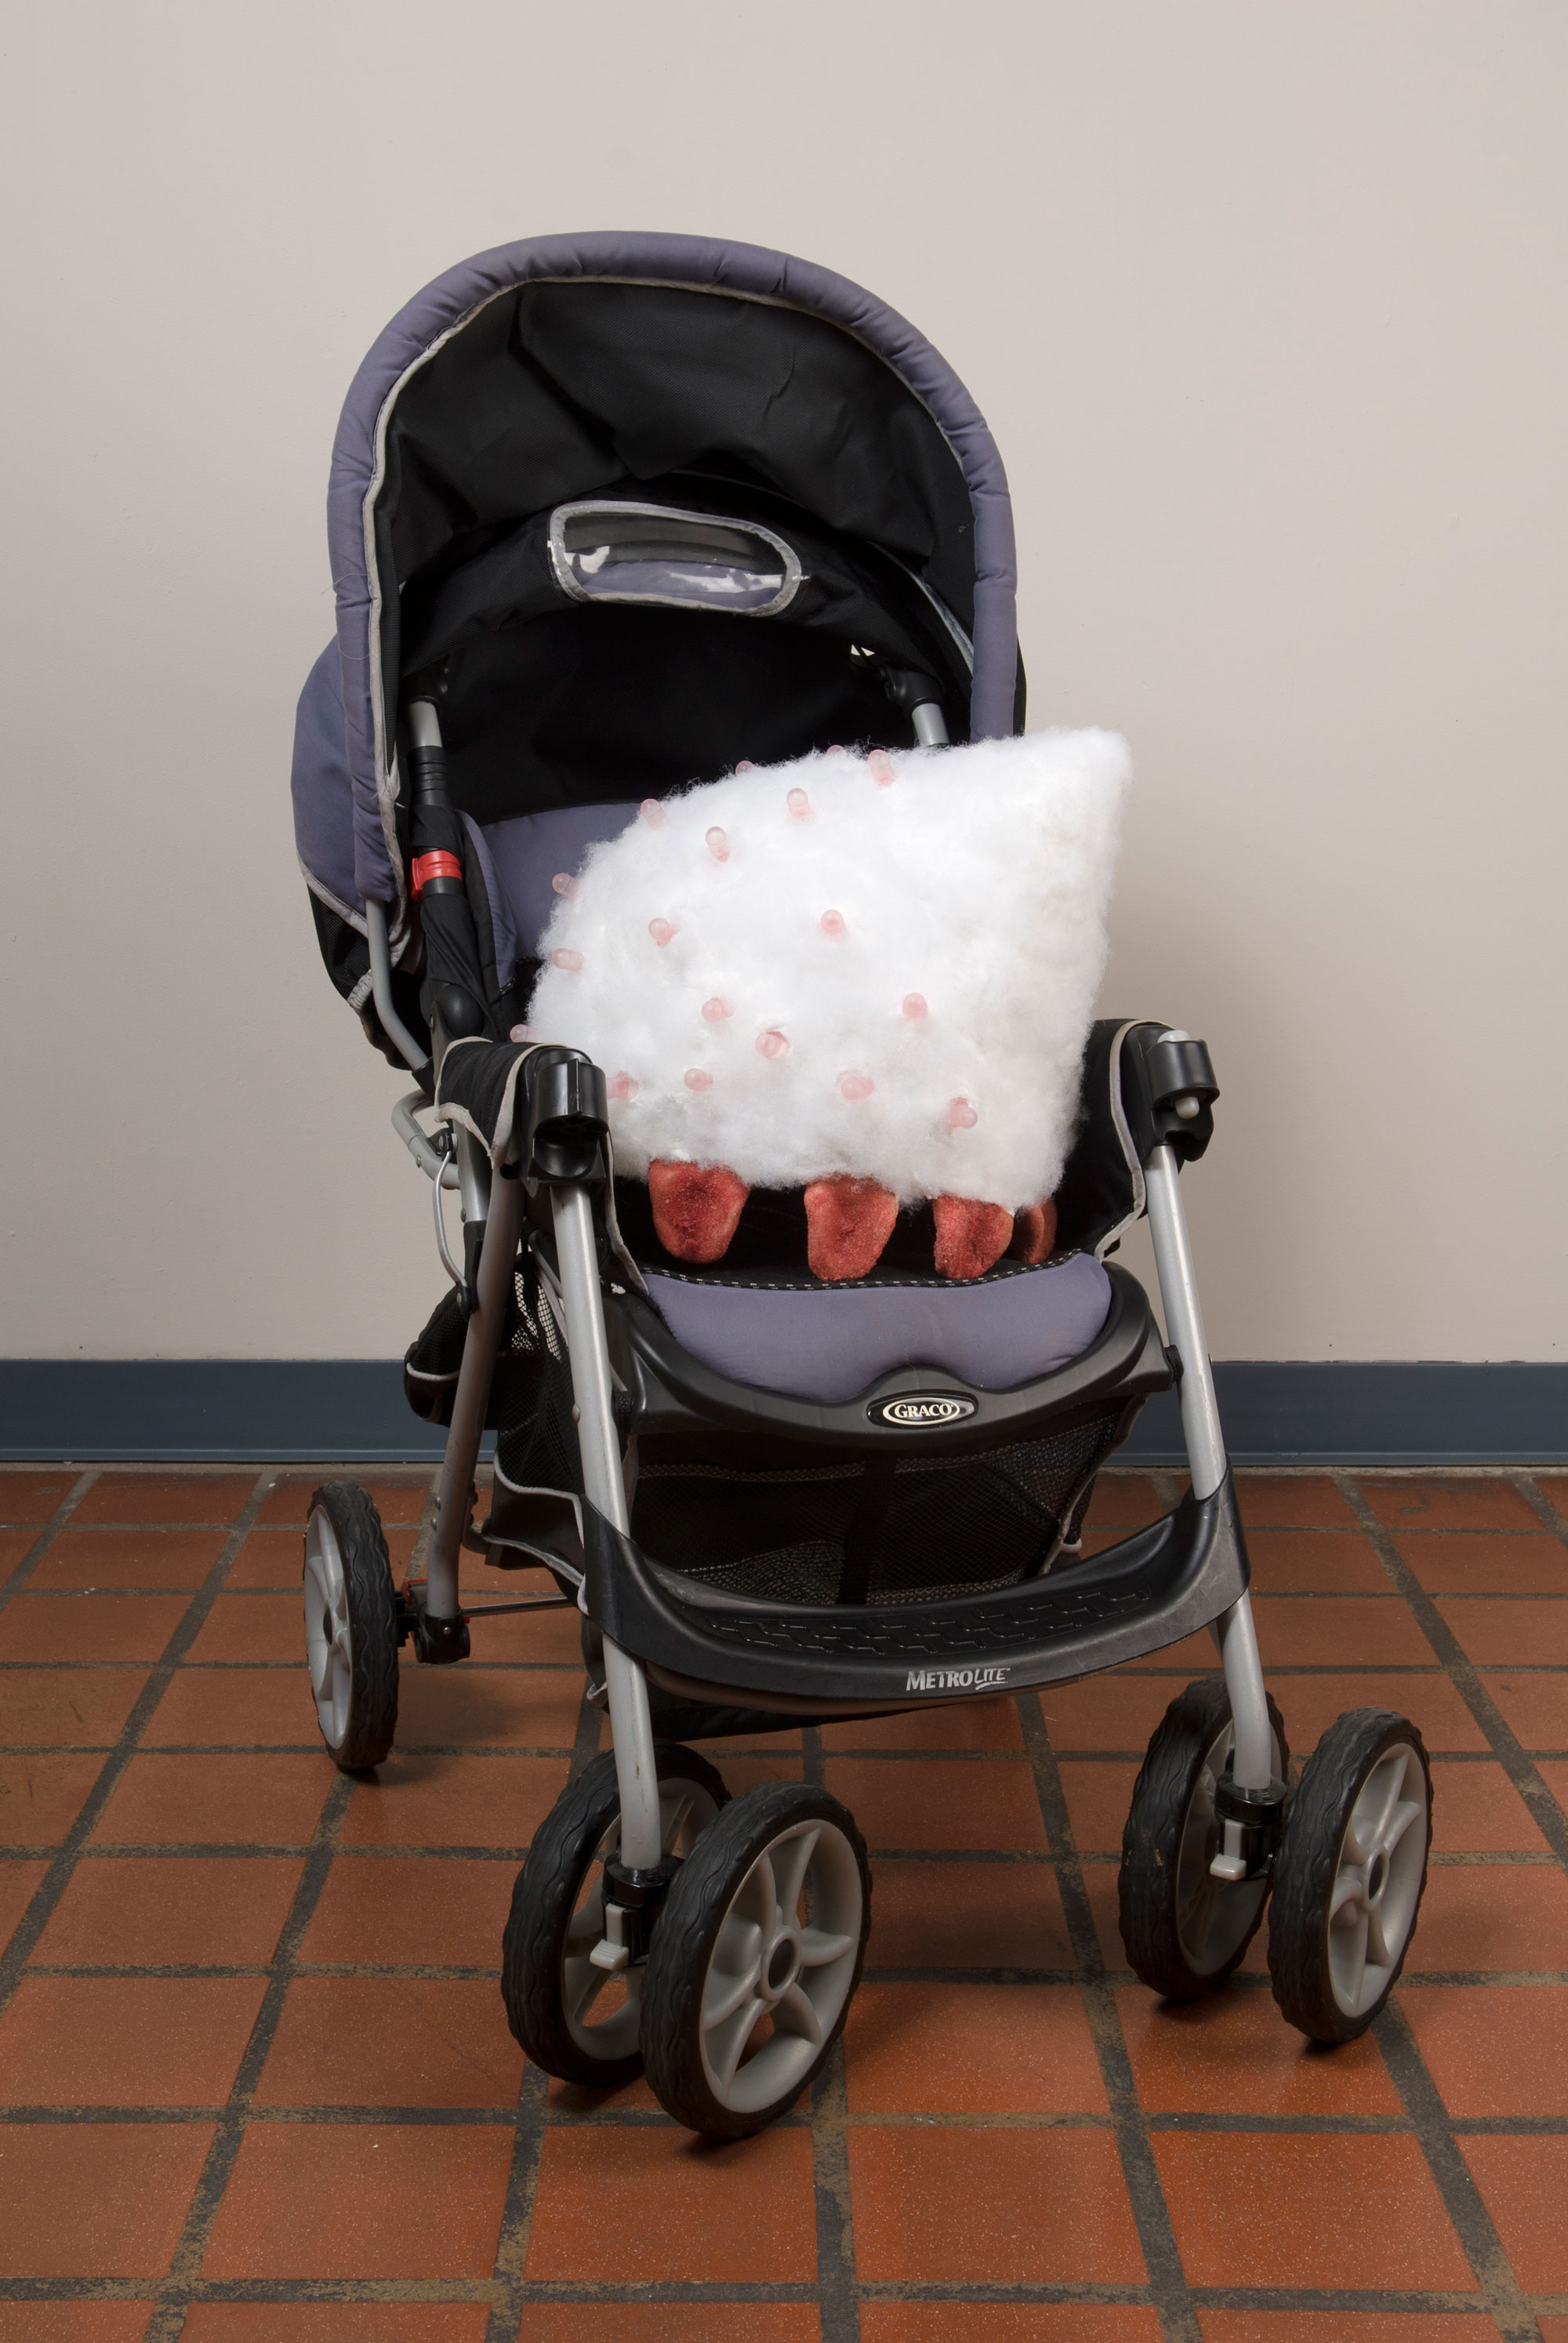 Untitled-Mouthstroller-web.jpg